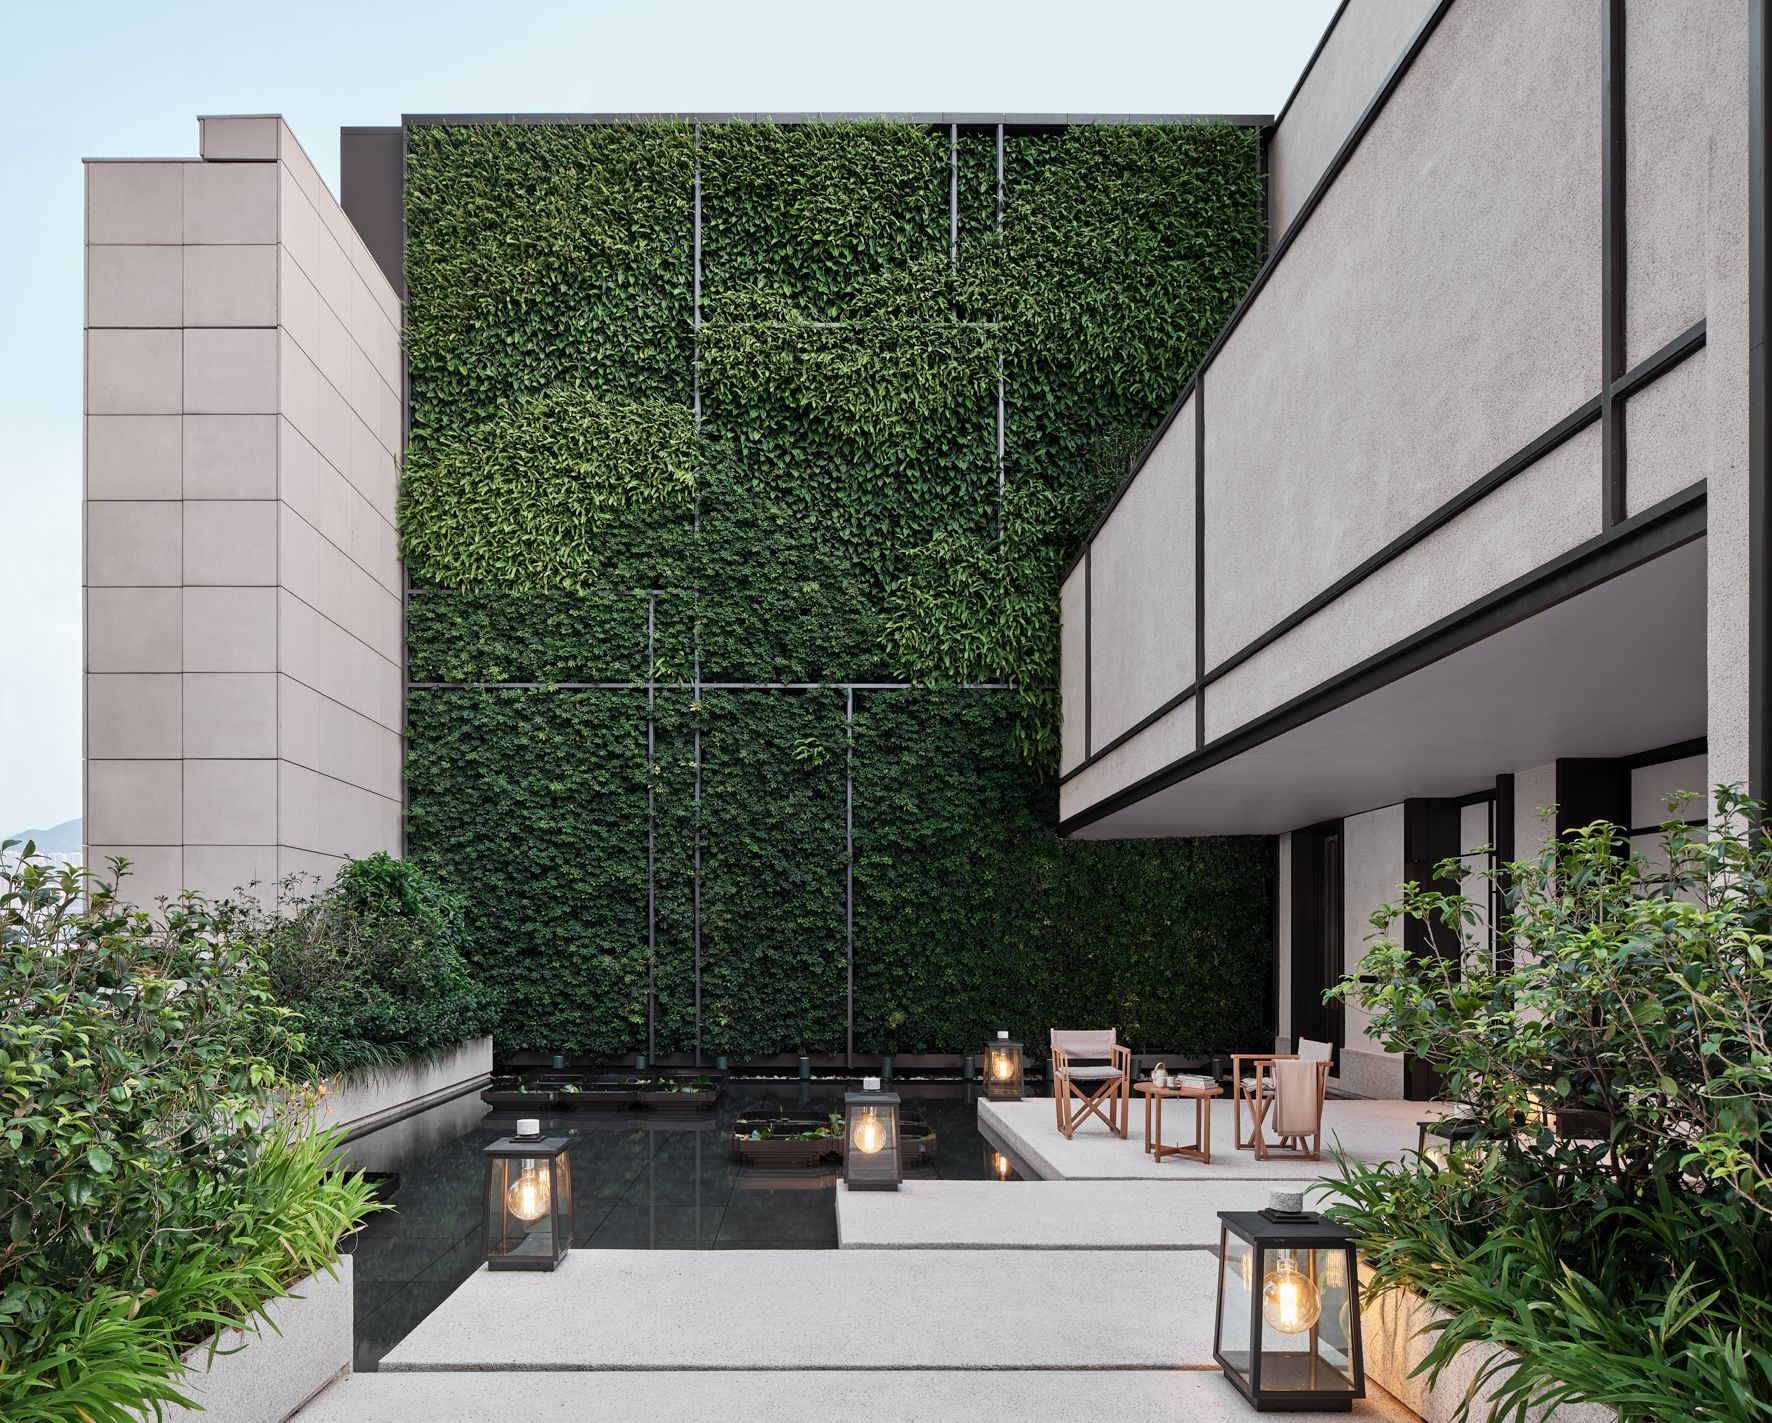 How Asaya At Rosewood Hong Kong Is Redefining Urbanites' Approach To Wellness